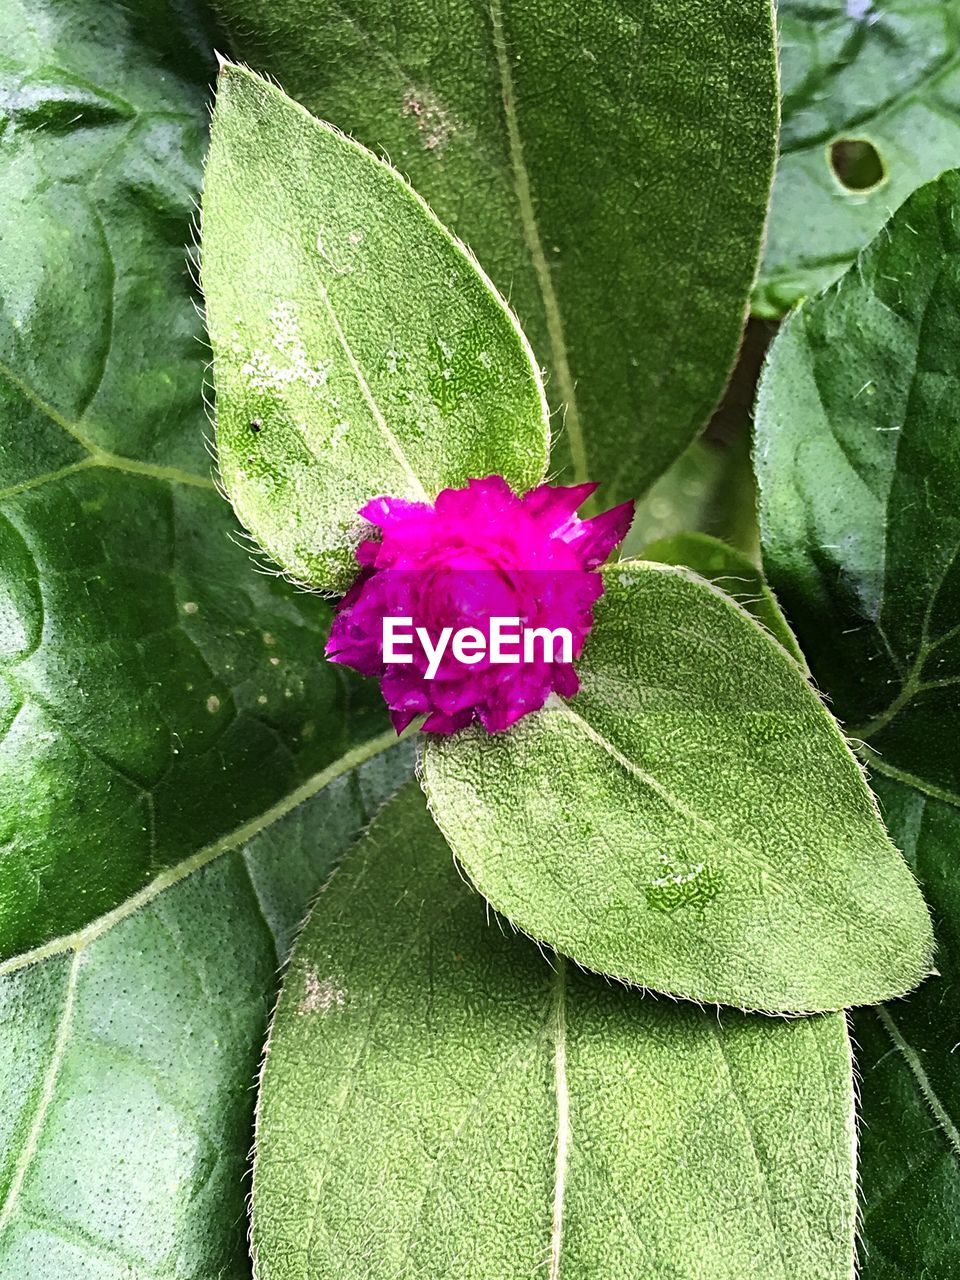 leaf, growth, green color, nature, beauty in nature, freshness, close-up, day, no people, outdoors, fragility, flower, petal, plant, flower head